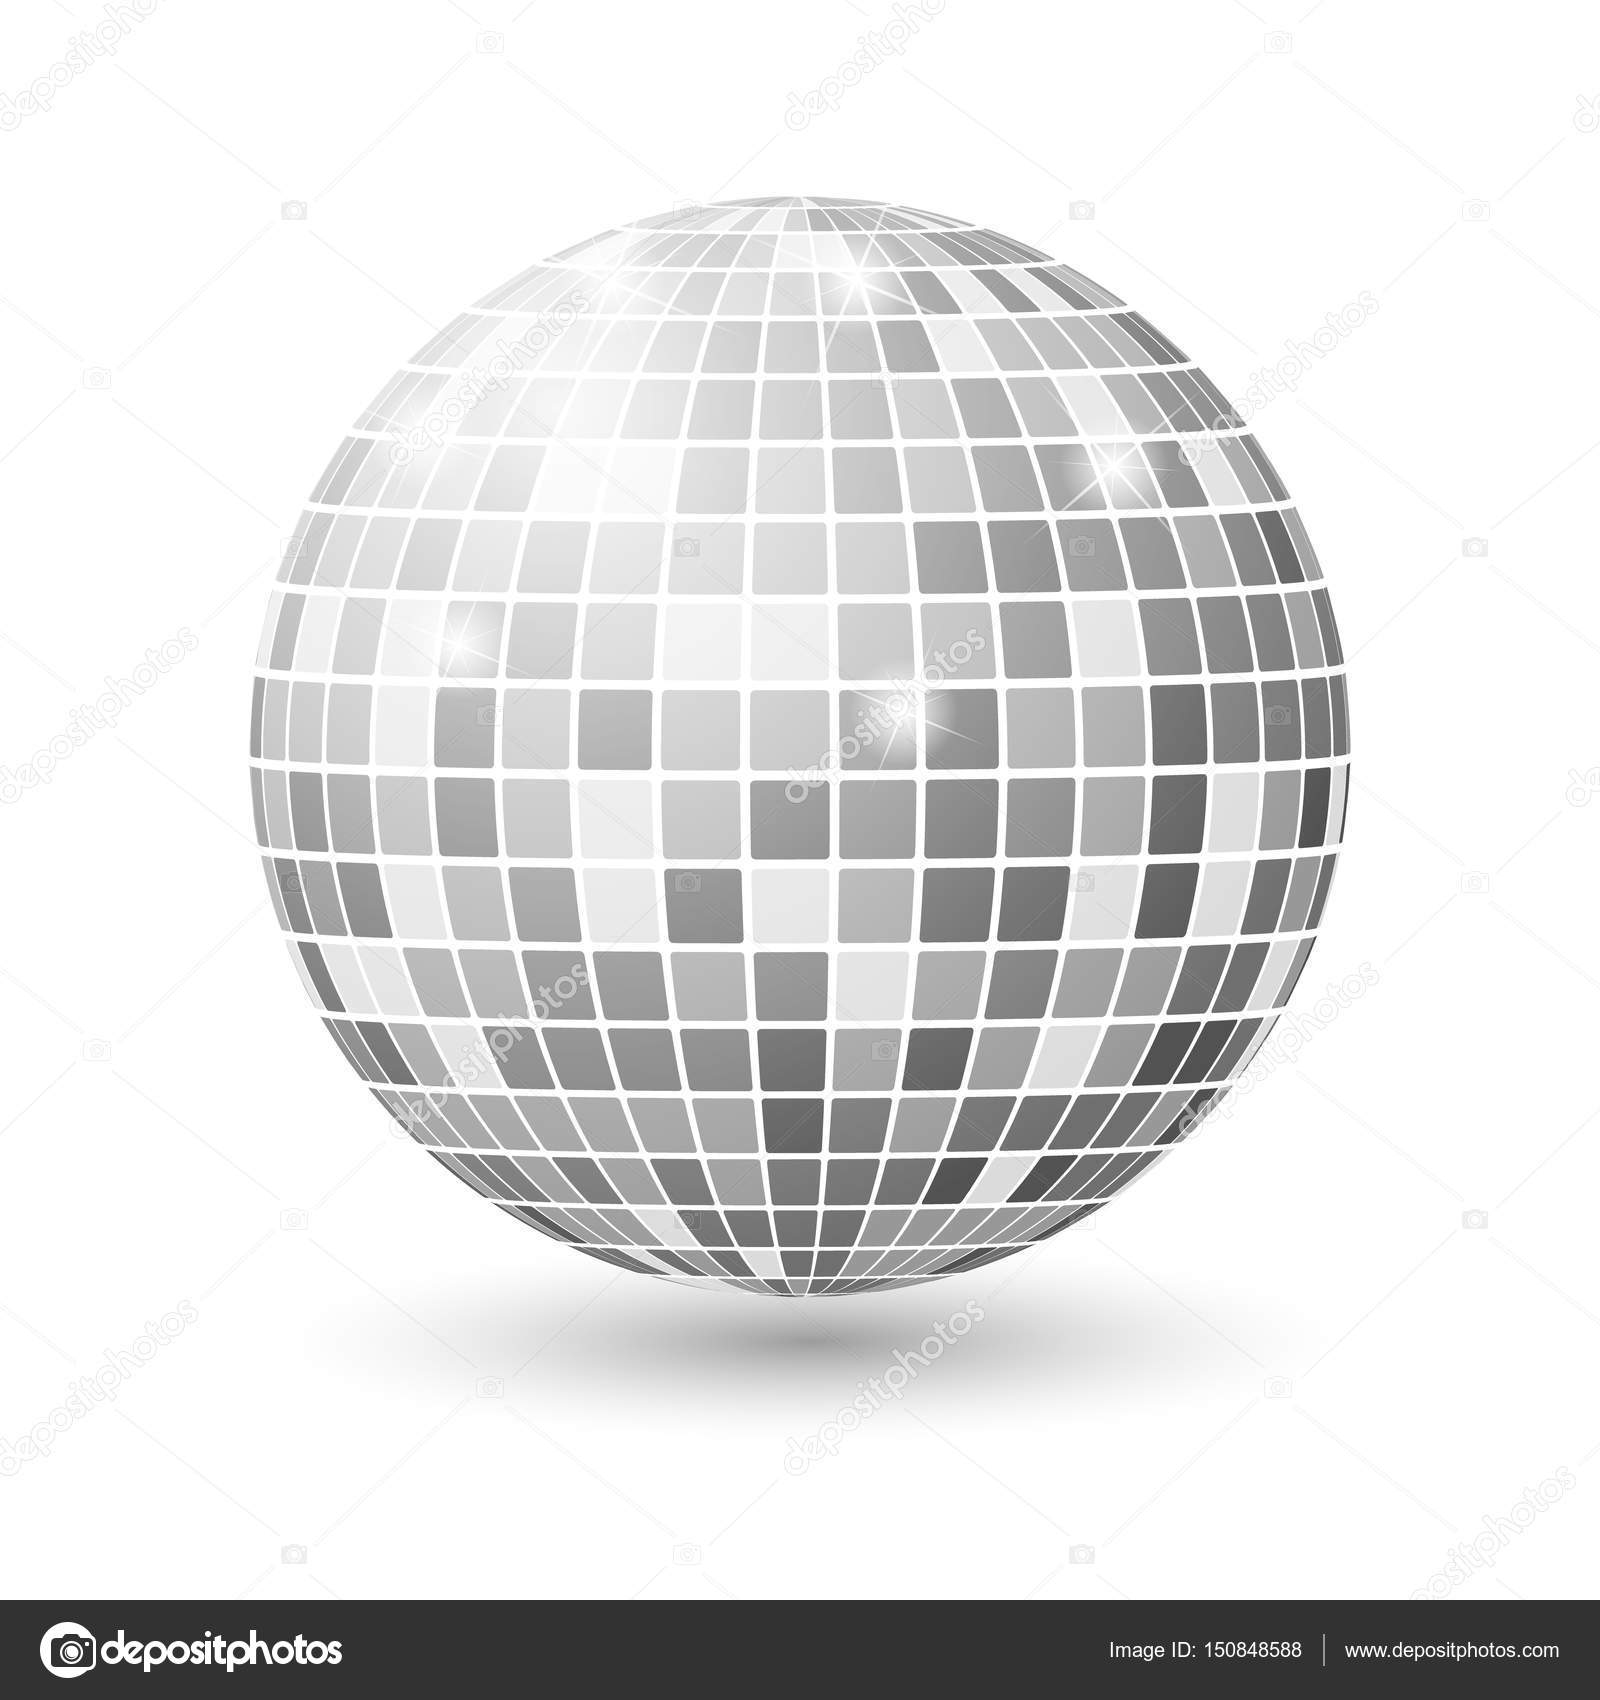 Disco Ball Isolated Ilration Night Club Party Light Element Bright Mirror Silver Design